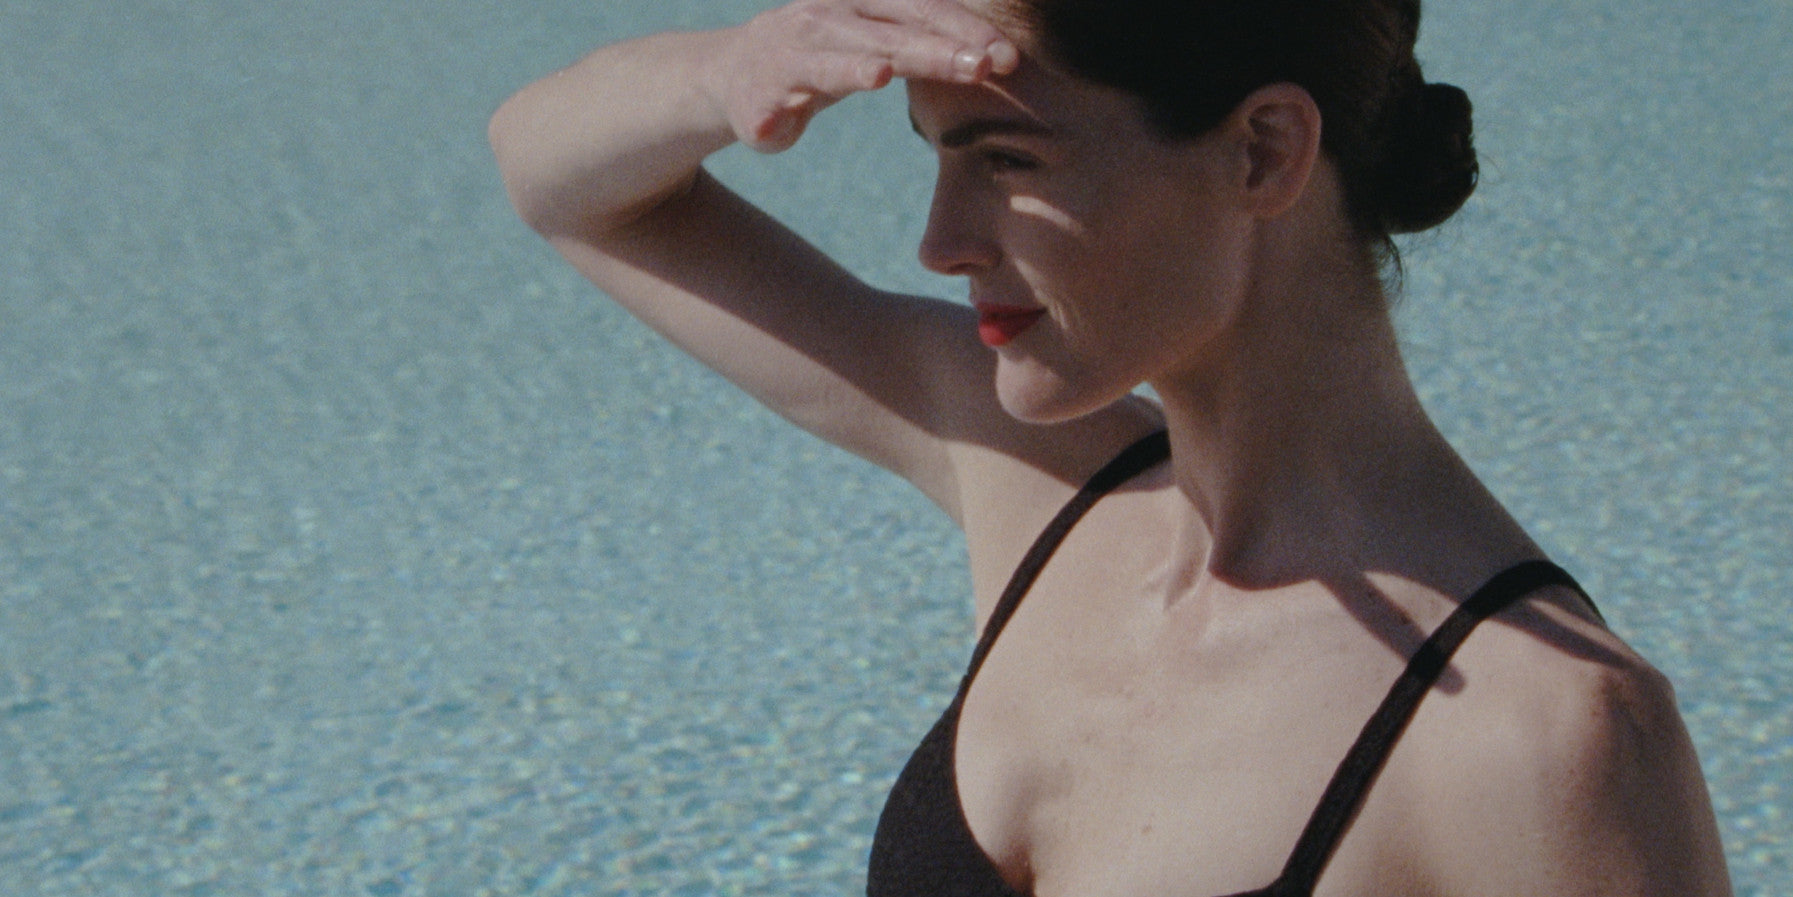 La Piscine: Poolside Fashion for an Endless Summer